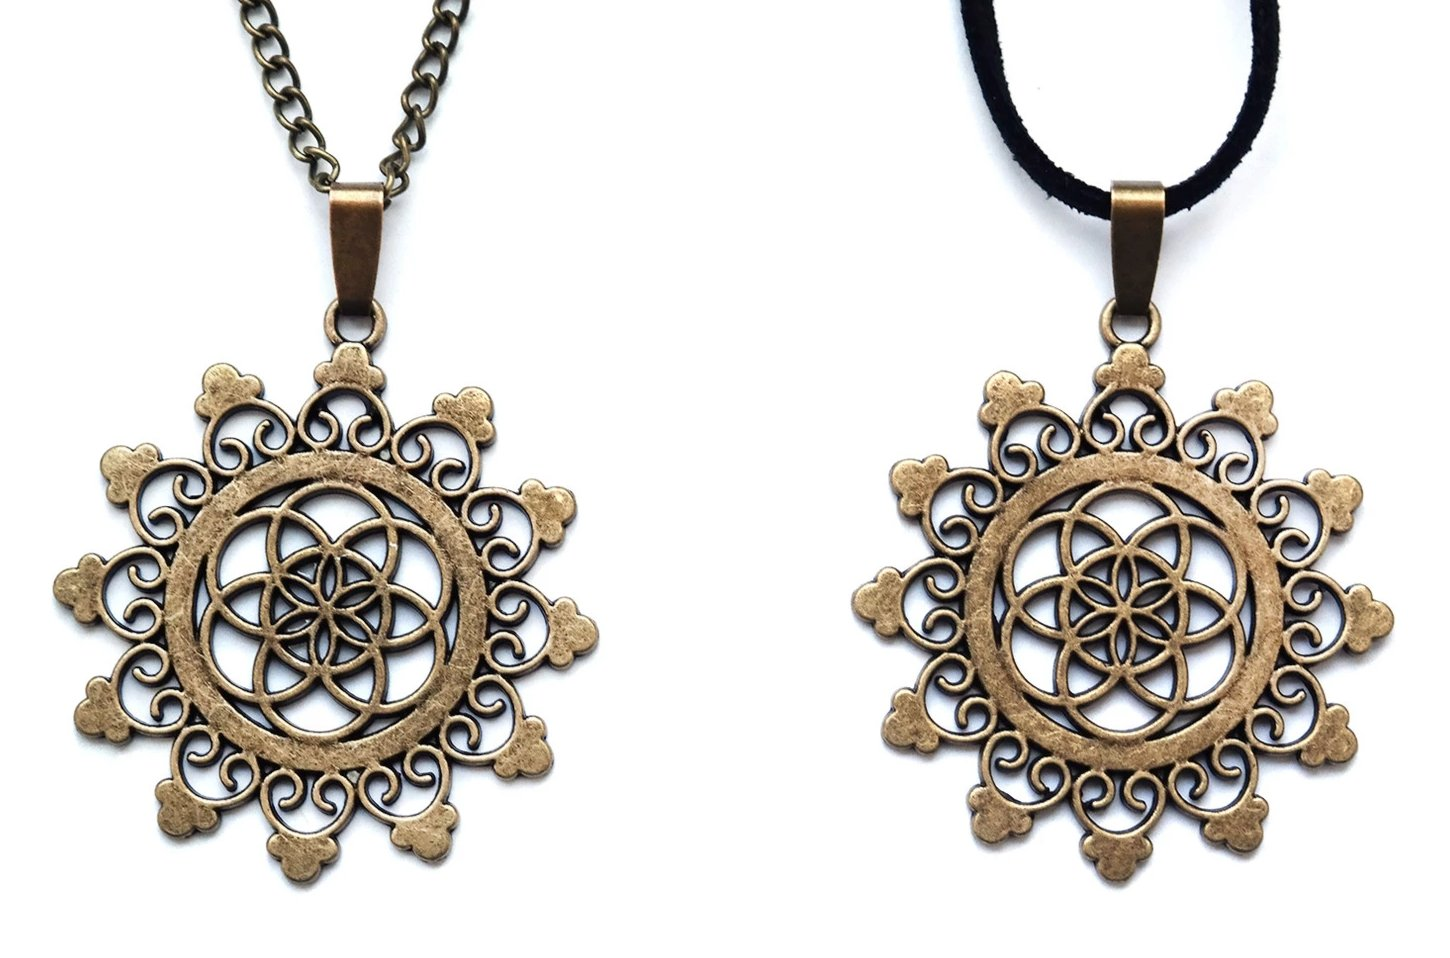 bronze 'Seed of Life' Mandala Necklace #783